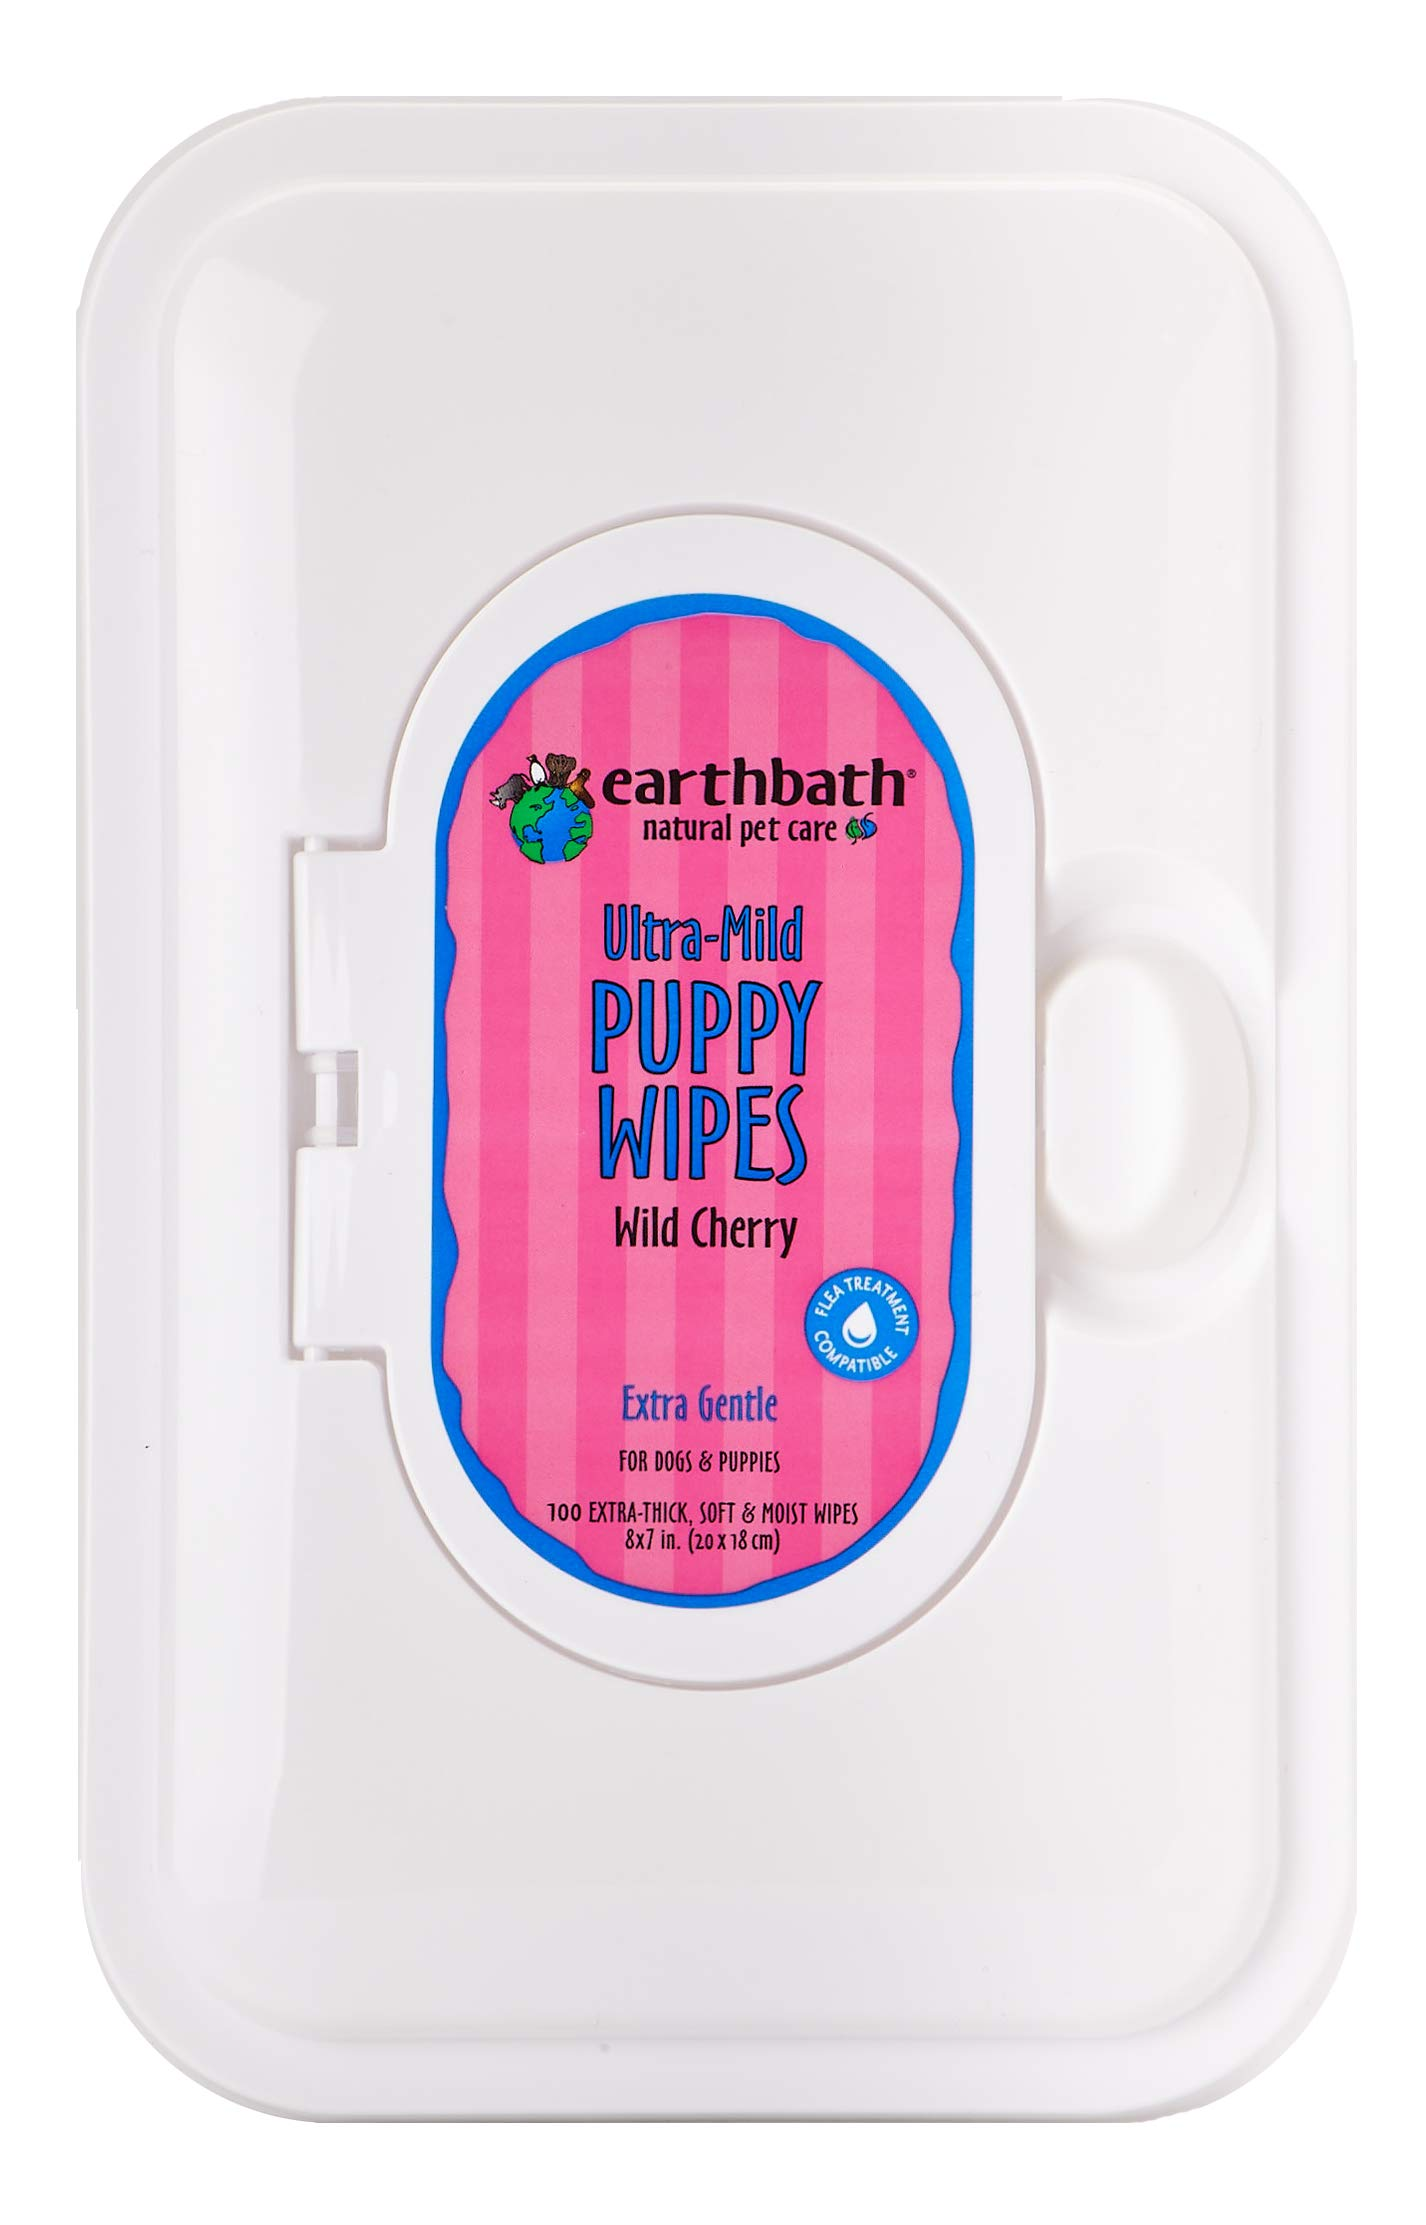 Earthbath 602644023096 Grooming Wipes Puppy 100 ct WLM